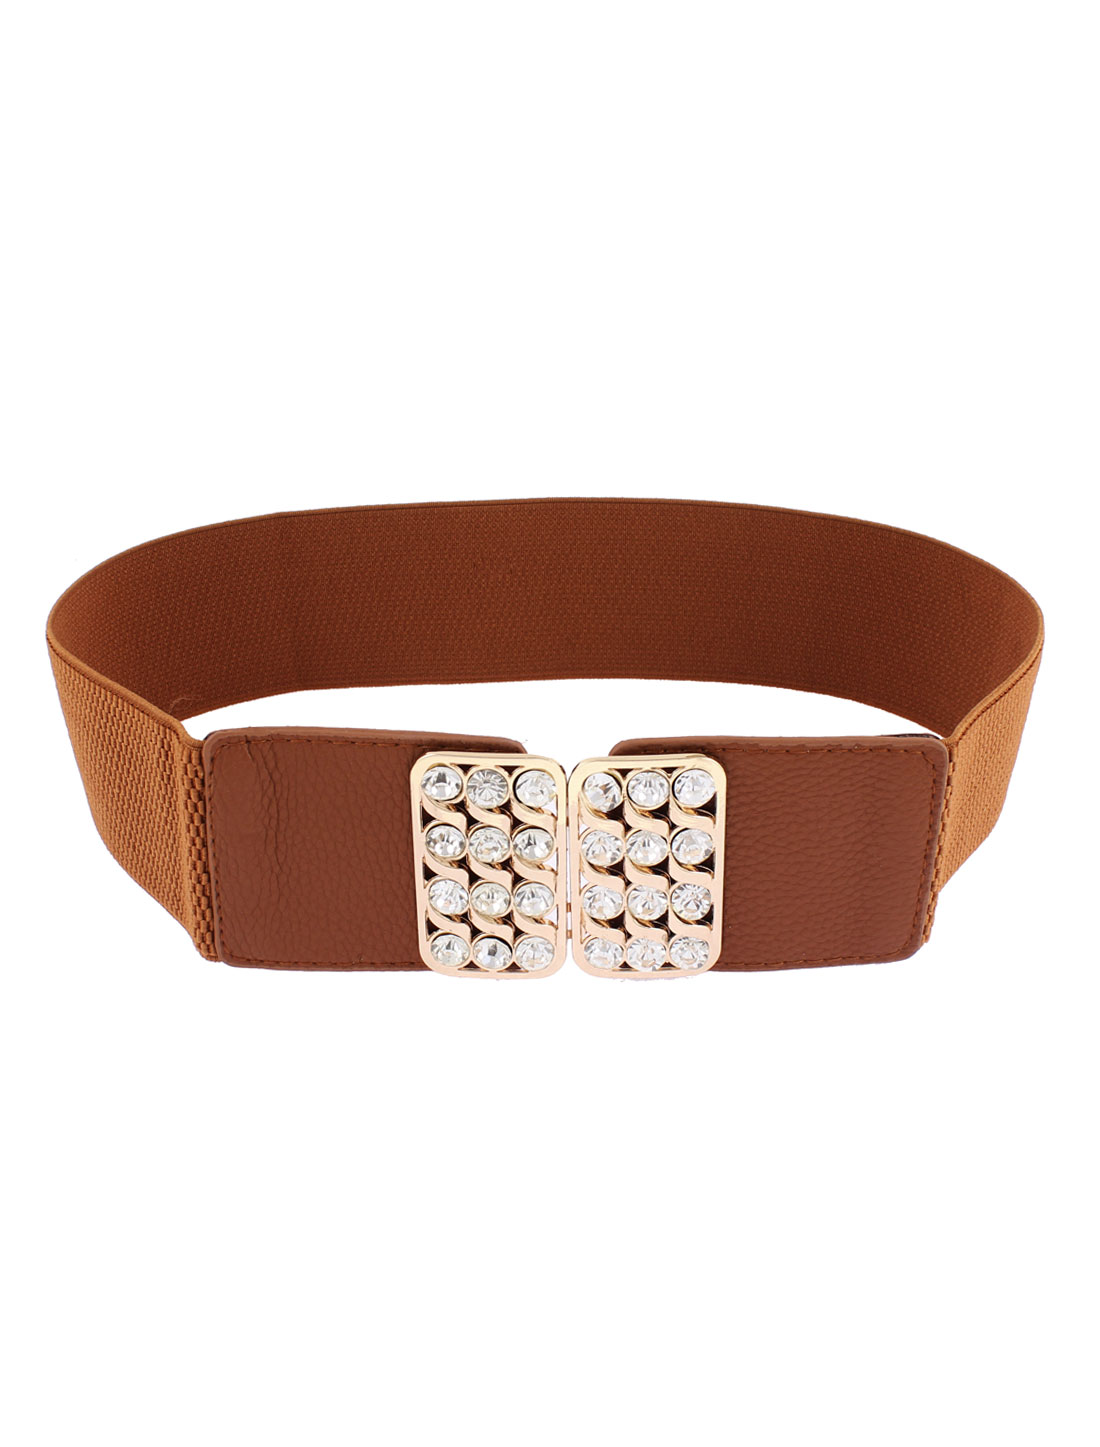 Rhinestone Detailing Adjustable Elastic Wide Waistband Waist Belt Camel Color